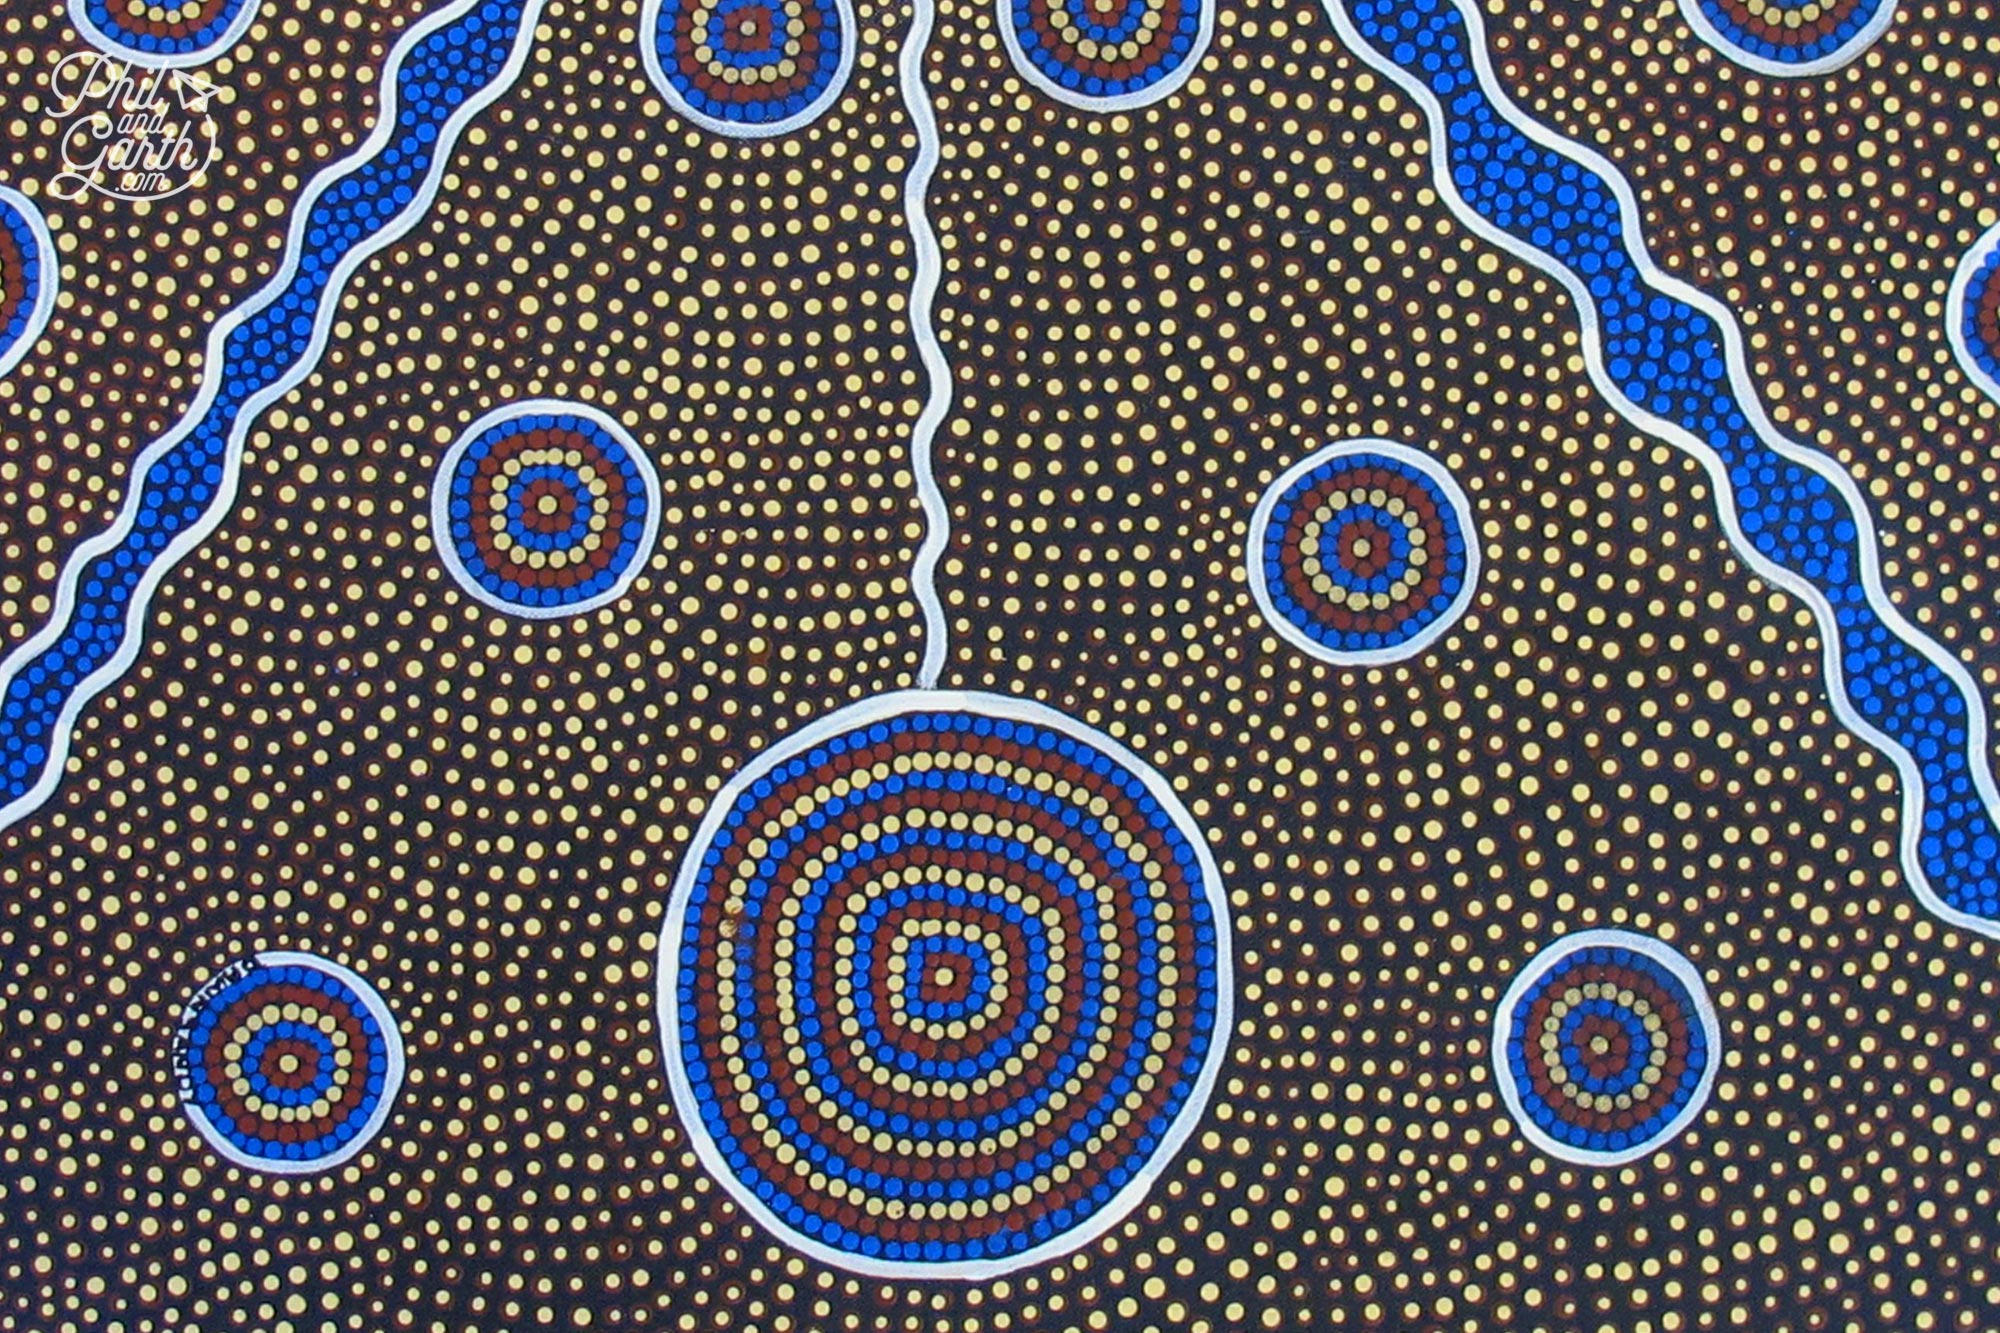 Aboriginal art, souvenirs, snacks and drinks can be bought from the Uluru Cultural Centre